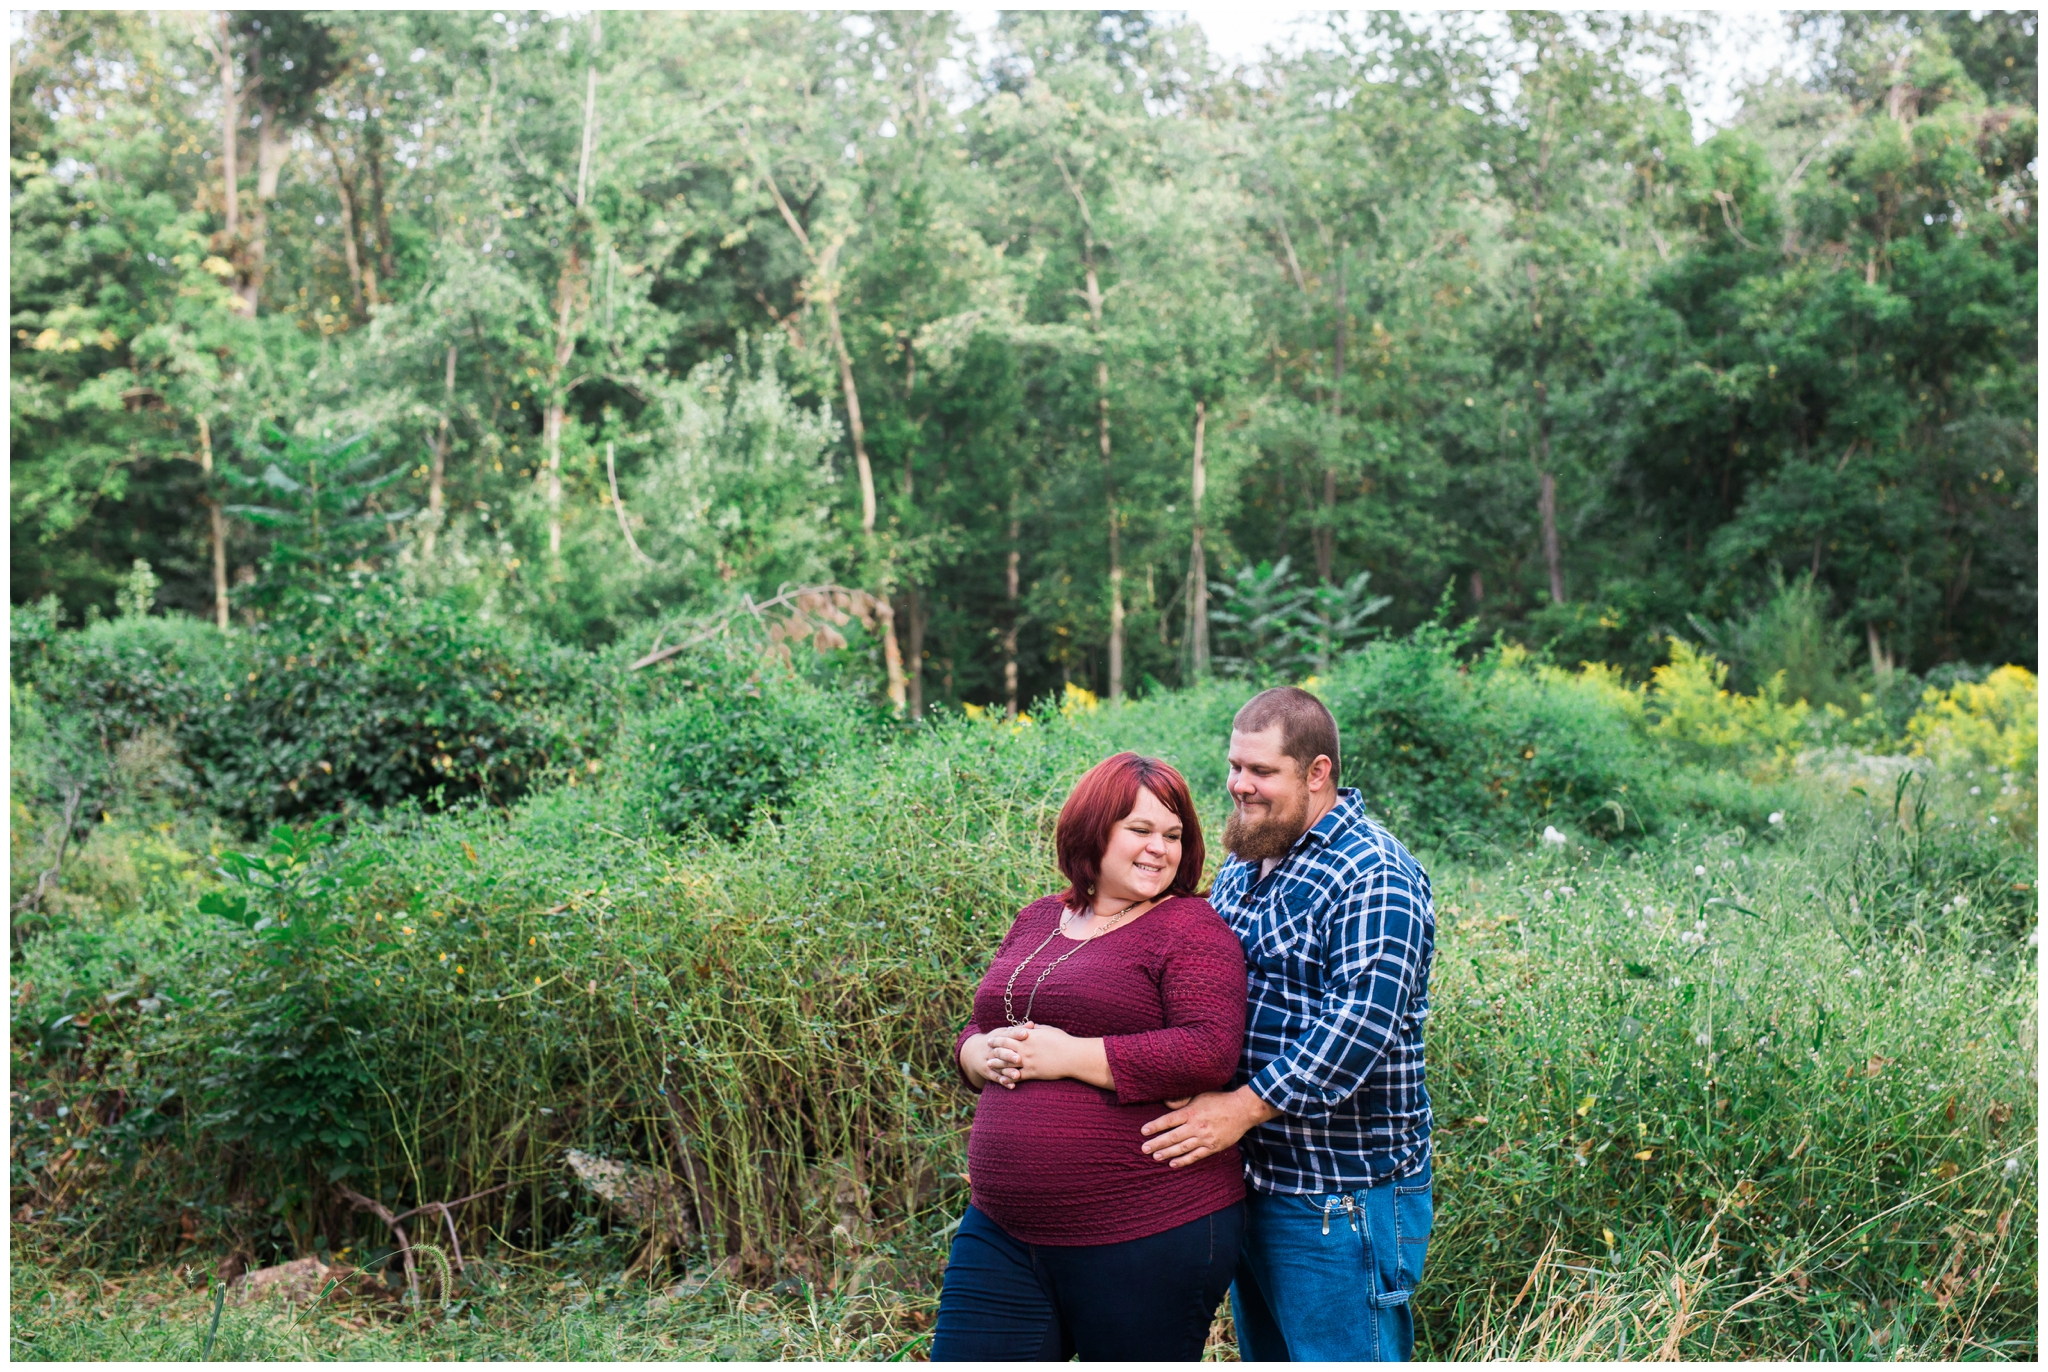 emily grace photography lancaster pa maternity photographer